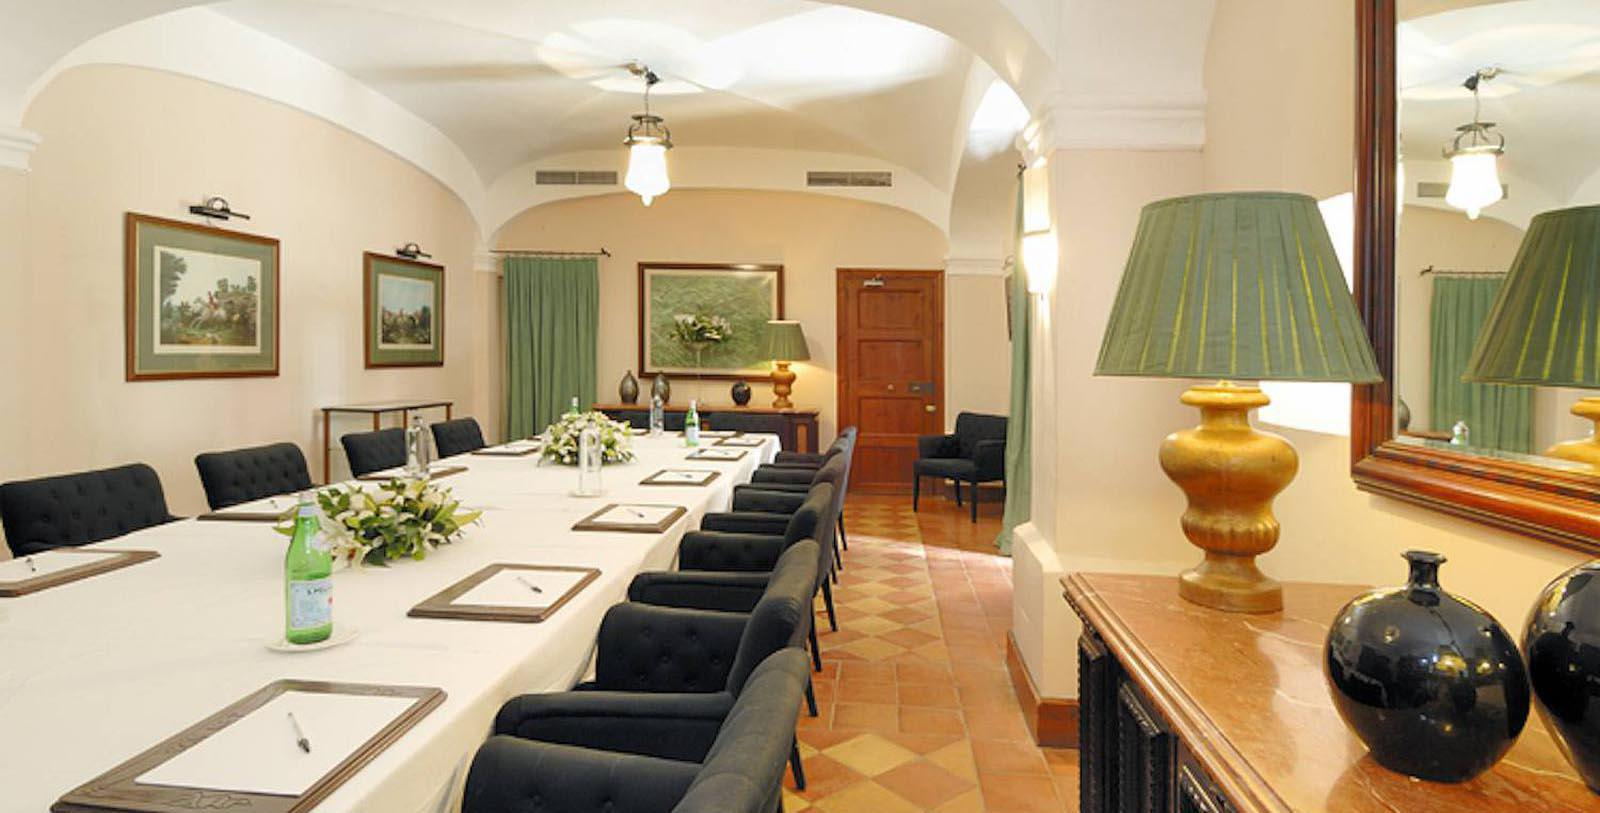 Image of Boardroom, Gran Hotel Son Net, Puigpunyent, Spain, 1672, Member of Historic Hotels Worldwide, Special Occasions